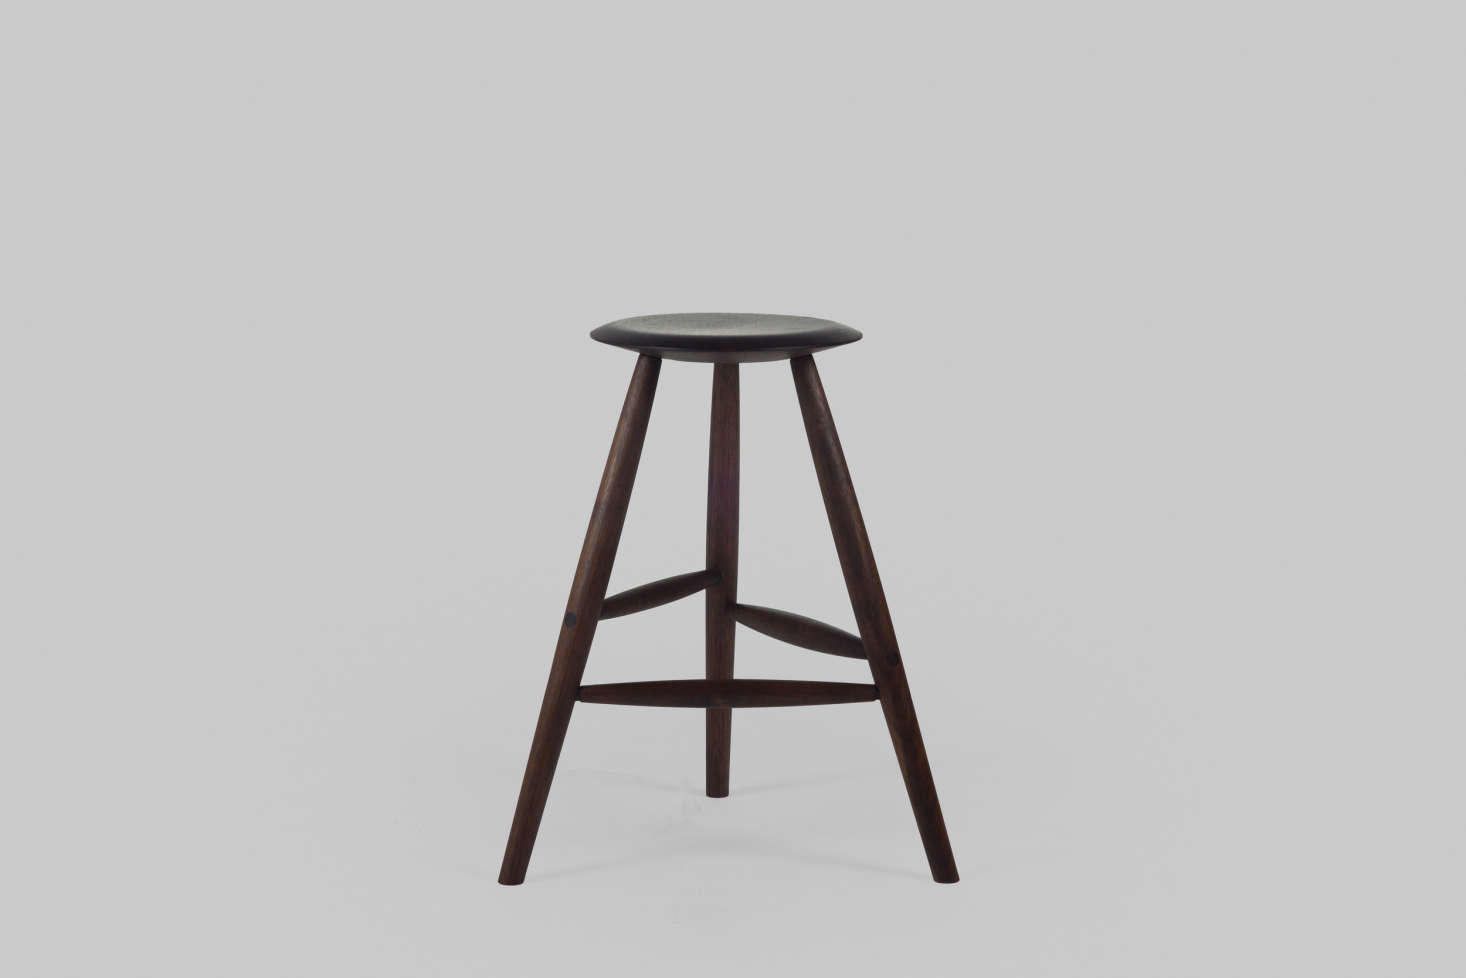 The stool's stature makes it versatile for all over the house—as a side table or even a nightstand. Shown here is the stool in oiled American black walnut.